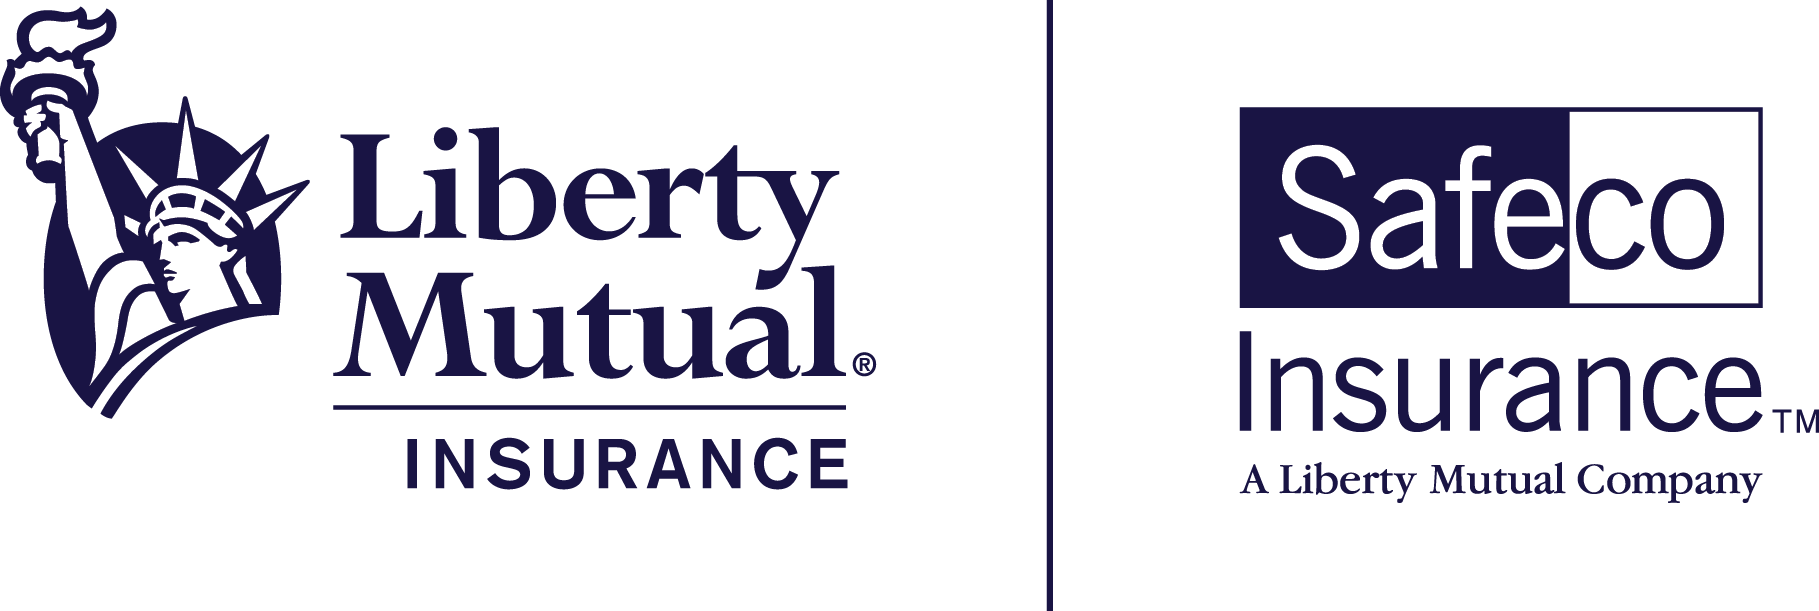 safeco insurance claims - 1819×611